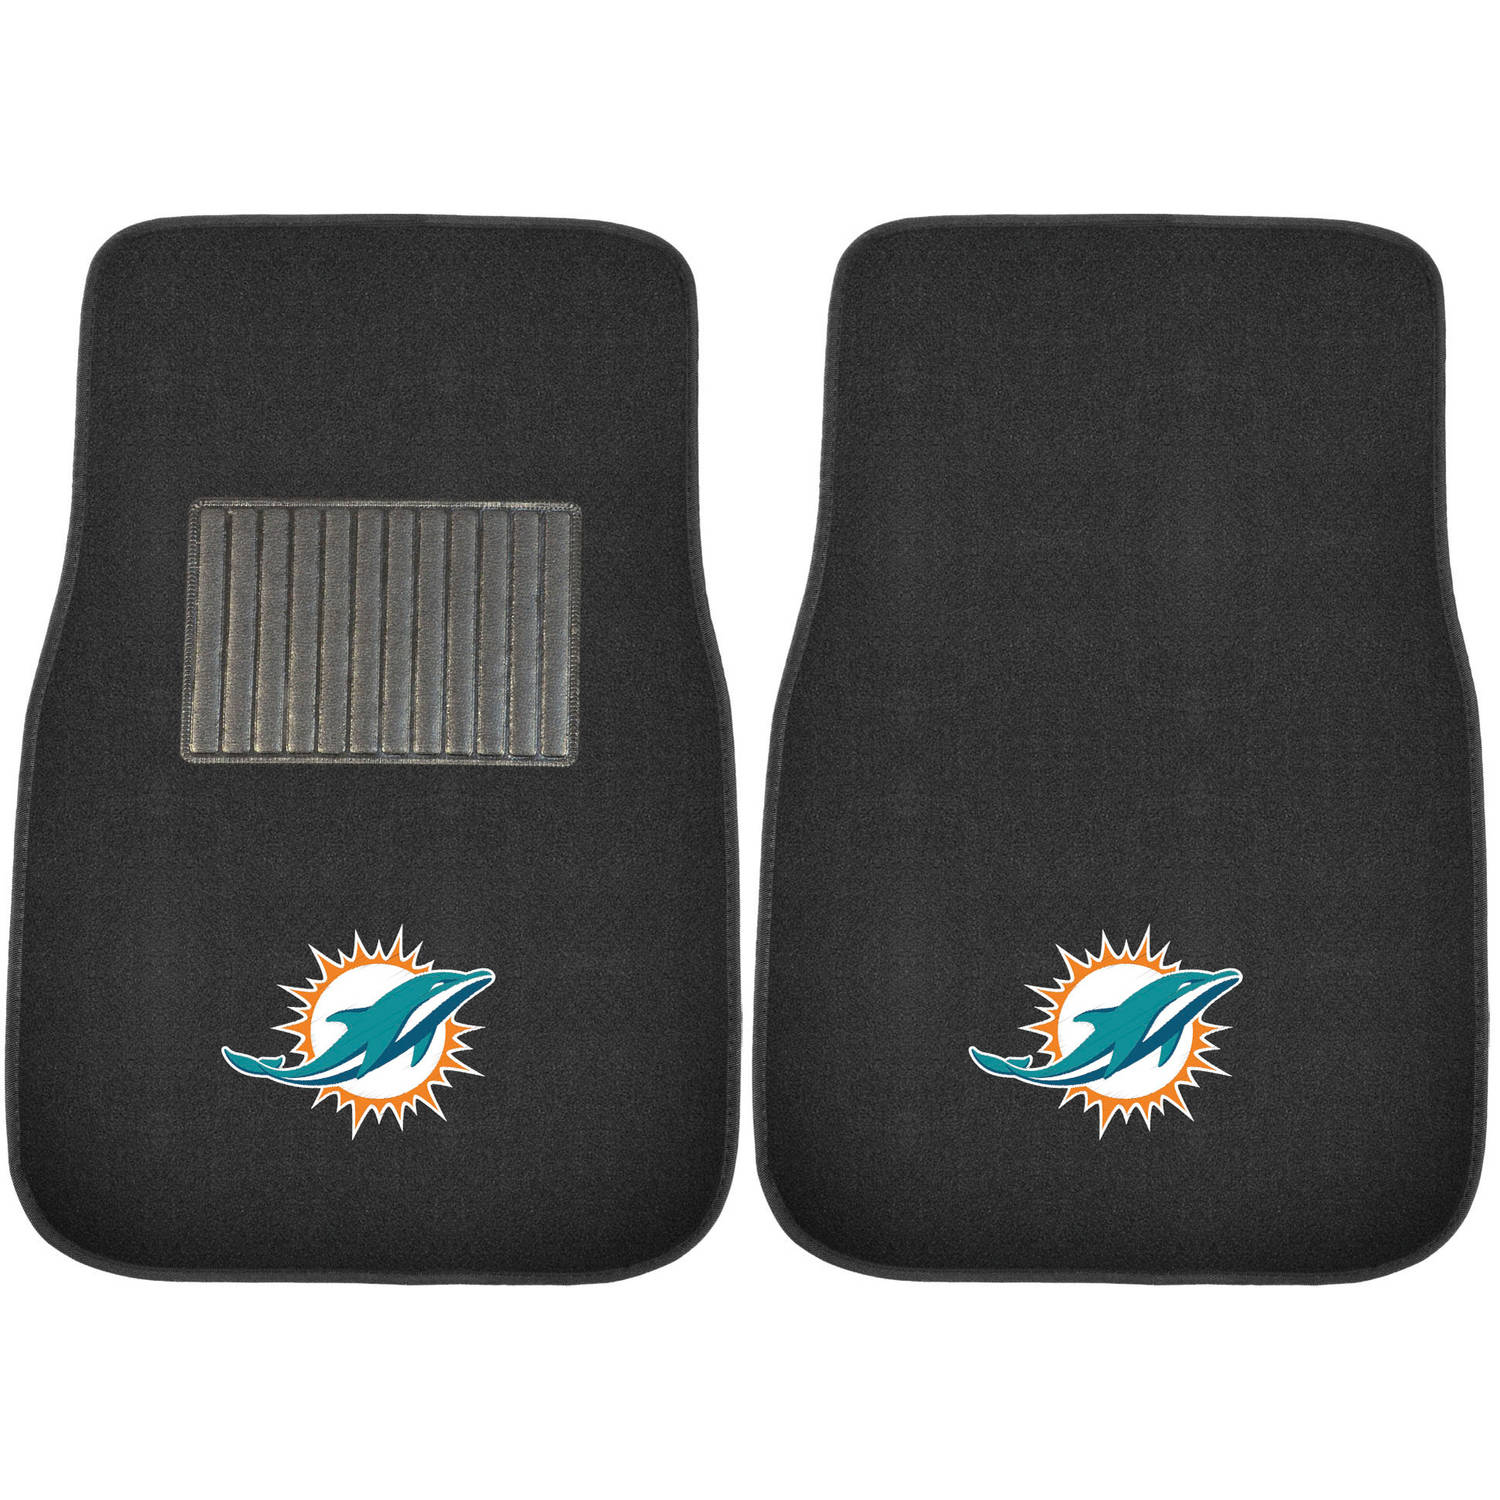 NFL Miami Dolphins Embroidered Car Mats